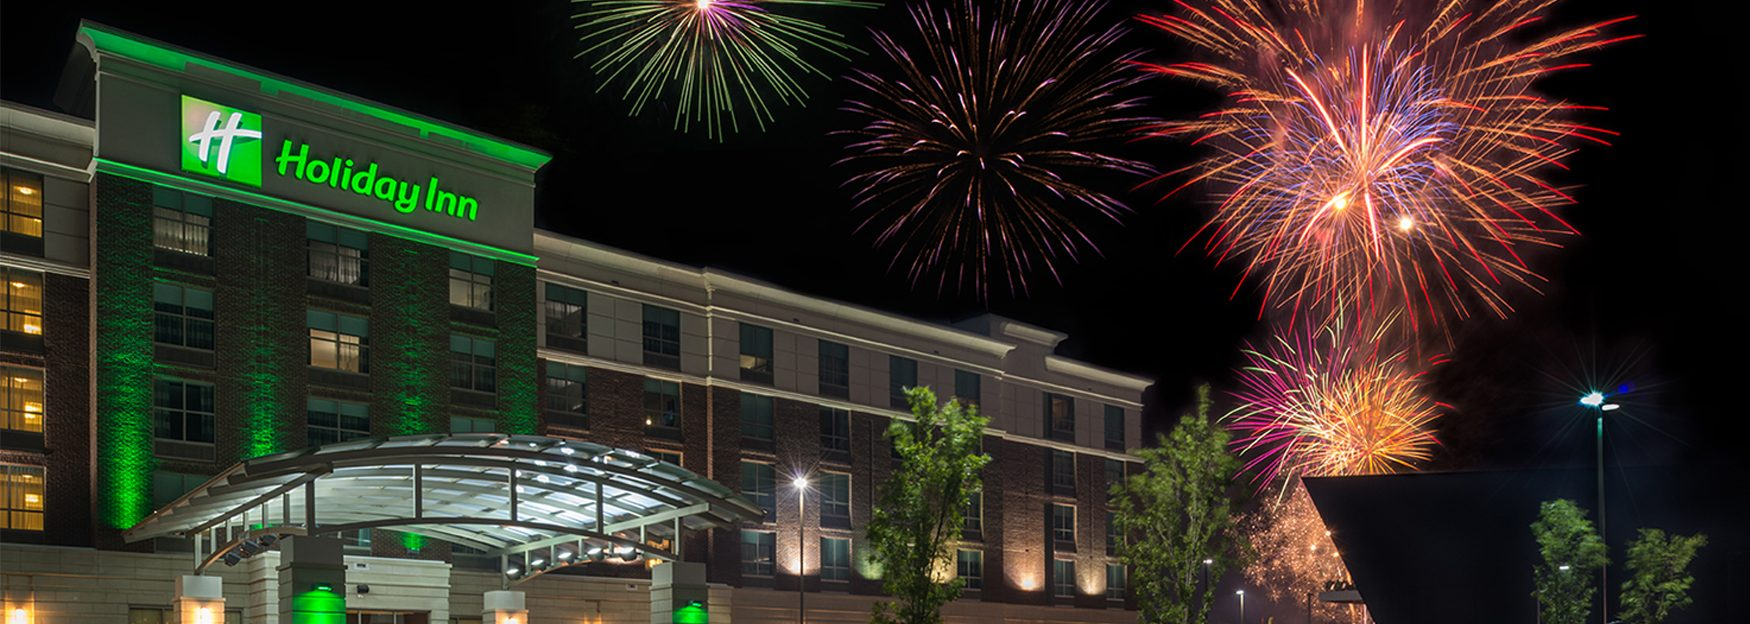 Holiday Inn with Fireworks